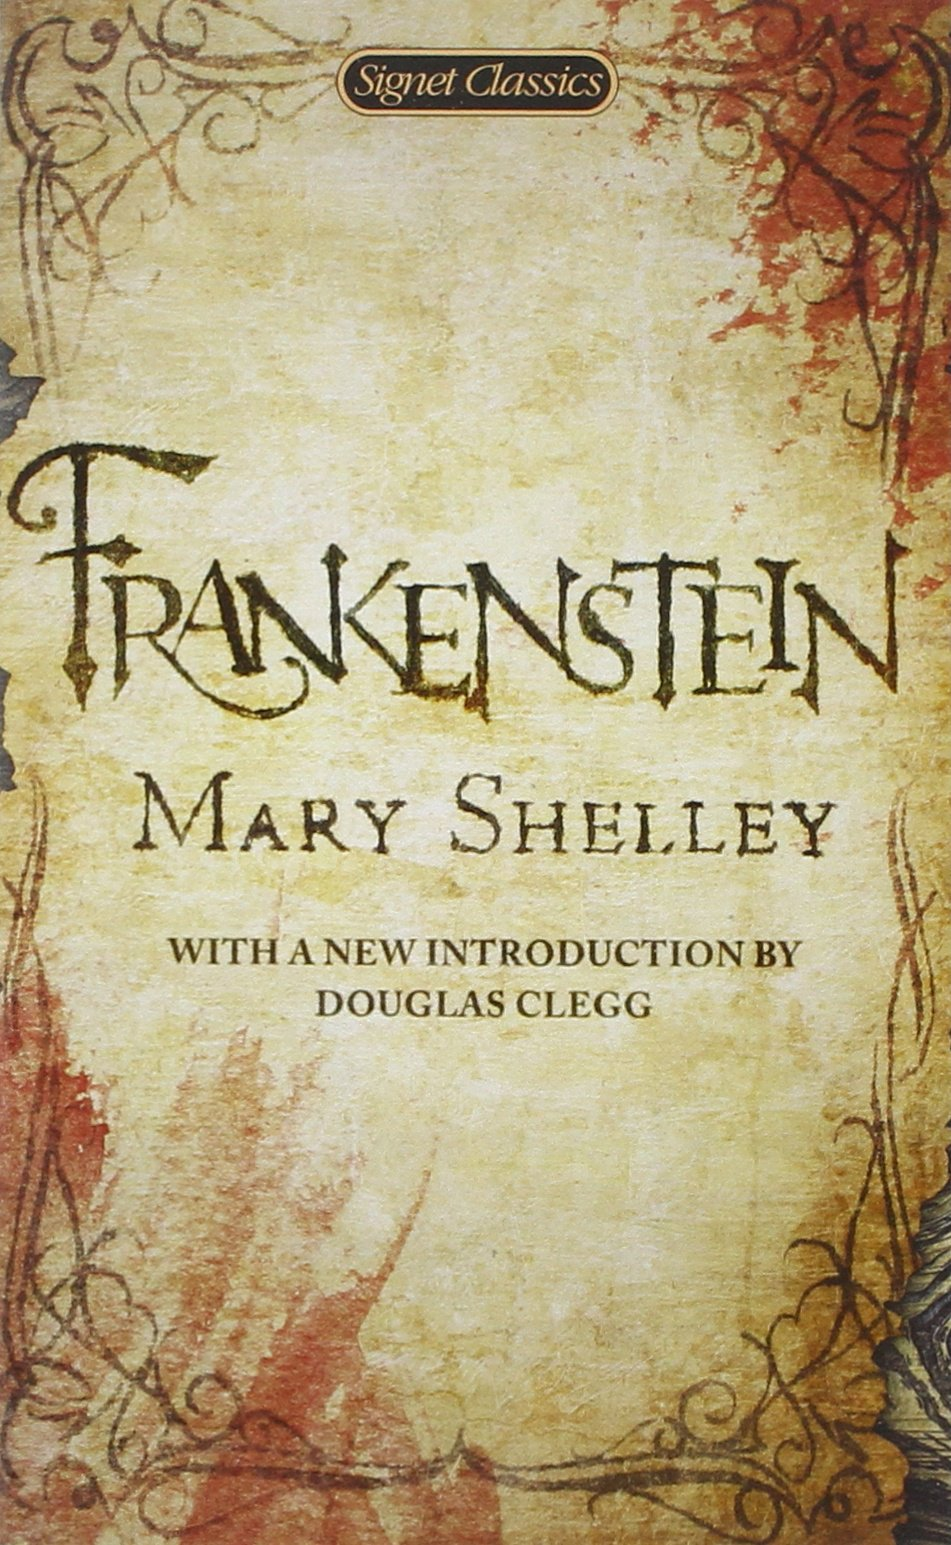 Frankenstein (Signet Classics) Mary Shelley Douglas Clegg Harold Bloom 9780451532244 Amazon.com Books & Frankenstein (Signet Classics): Mary Shelley Douglas Clegg ... pezcame.com